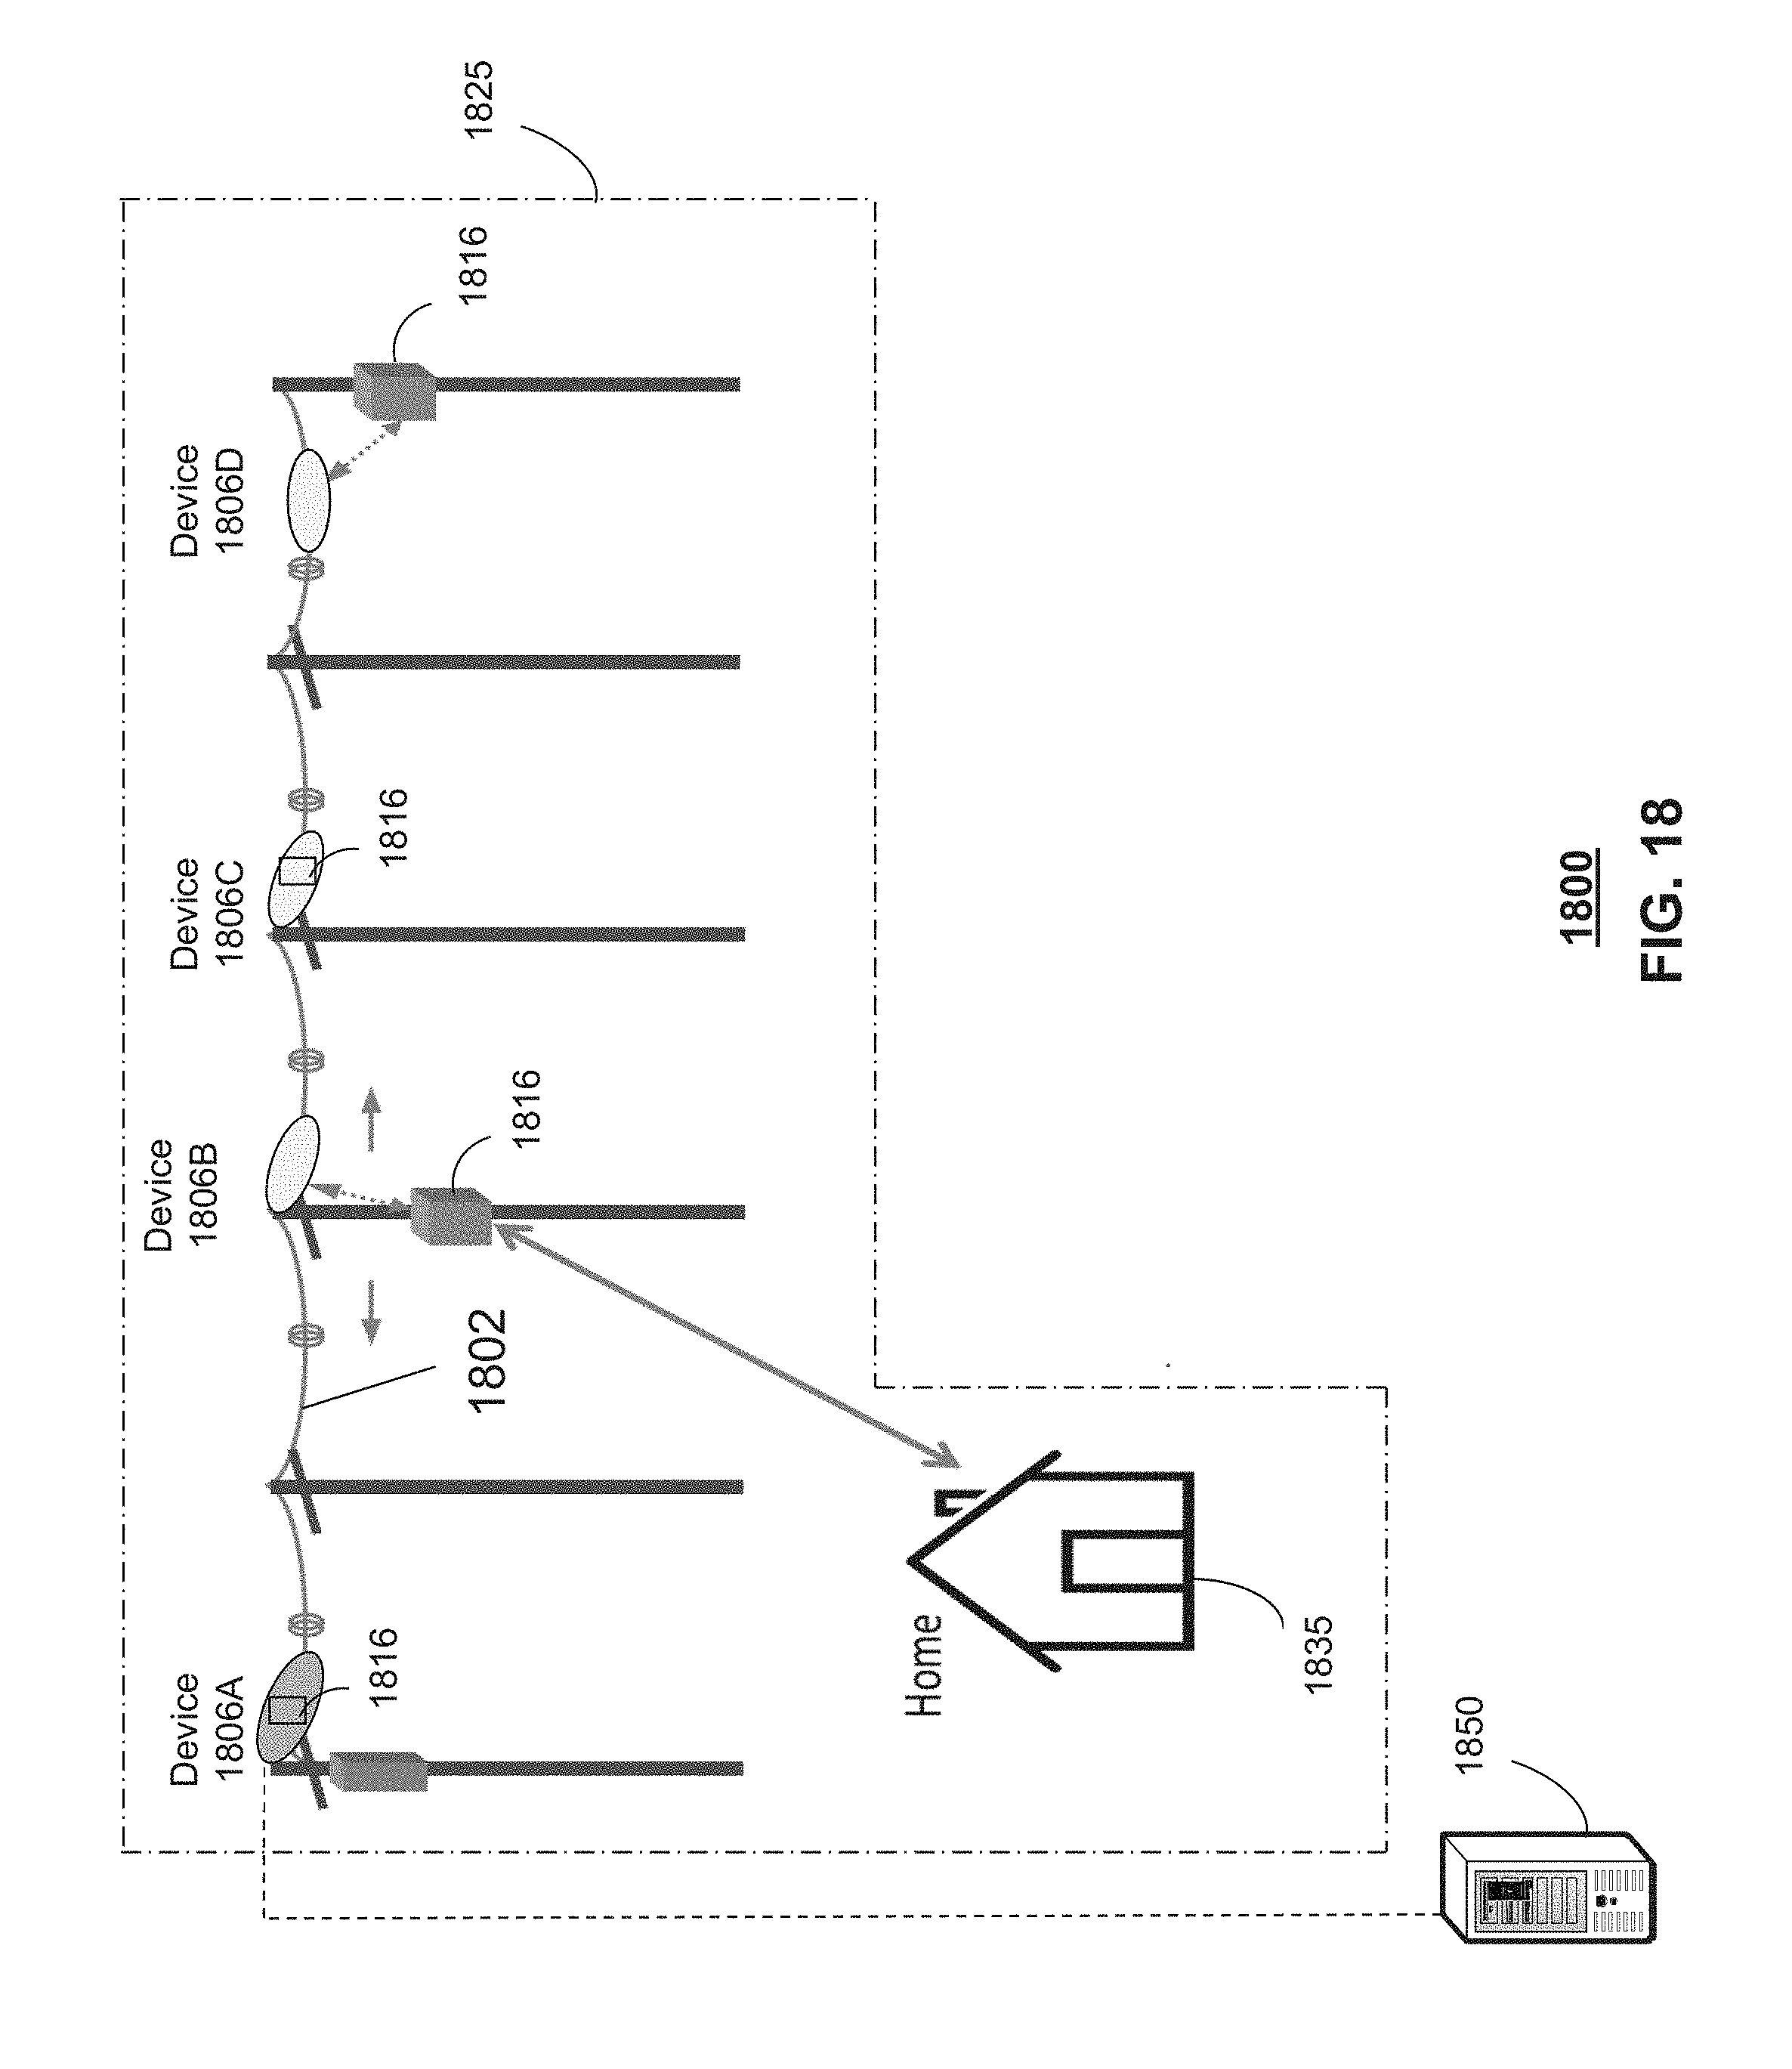 us9904535b2 method and apparatus for distributing software